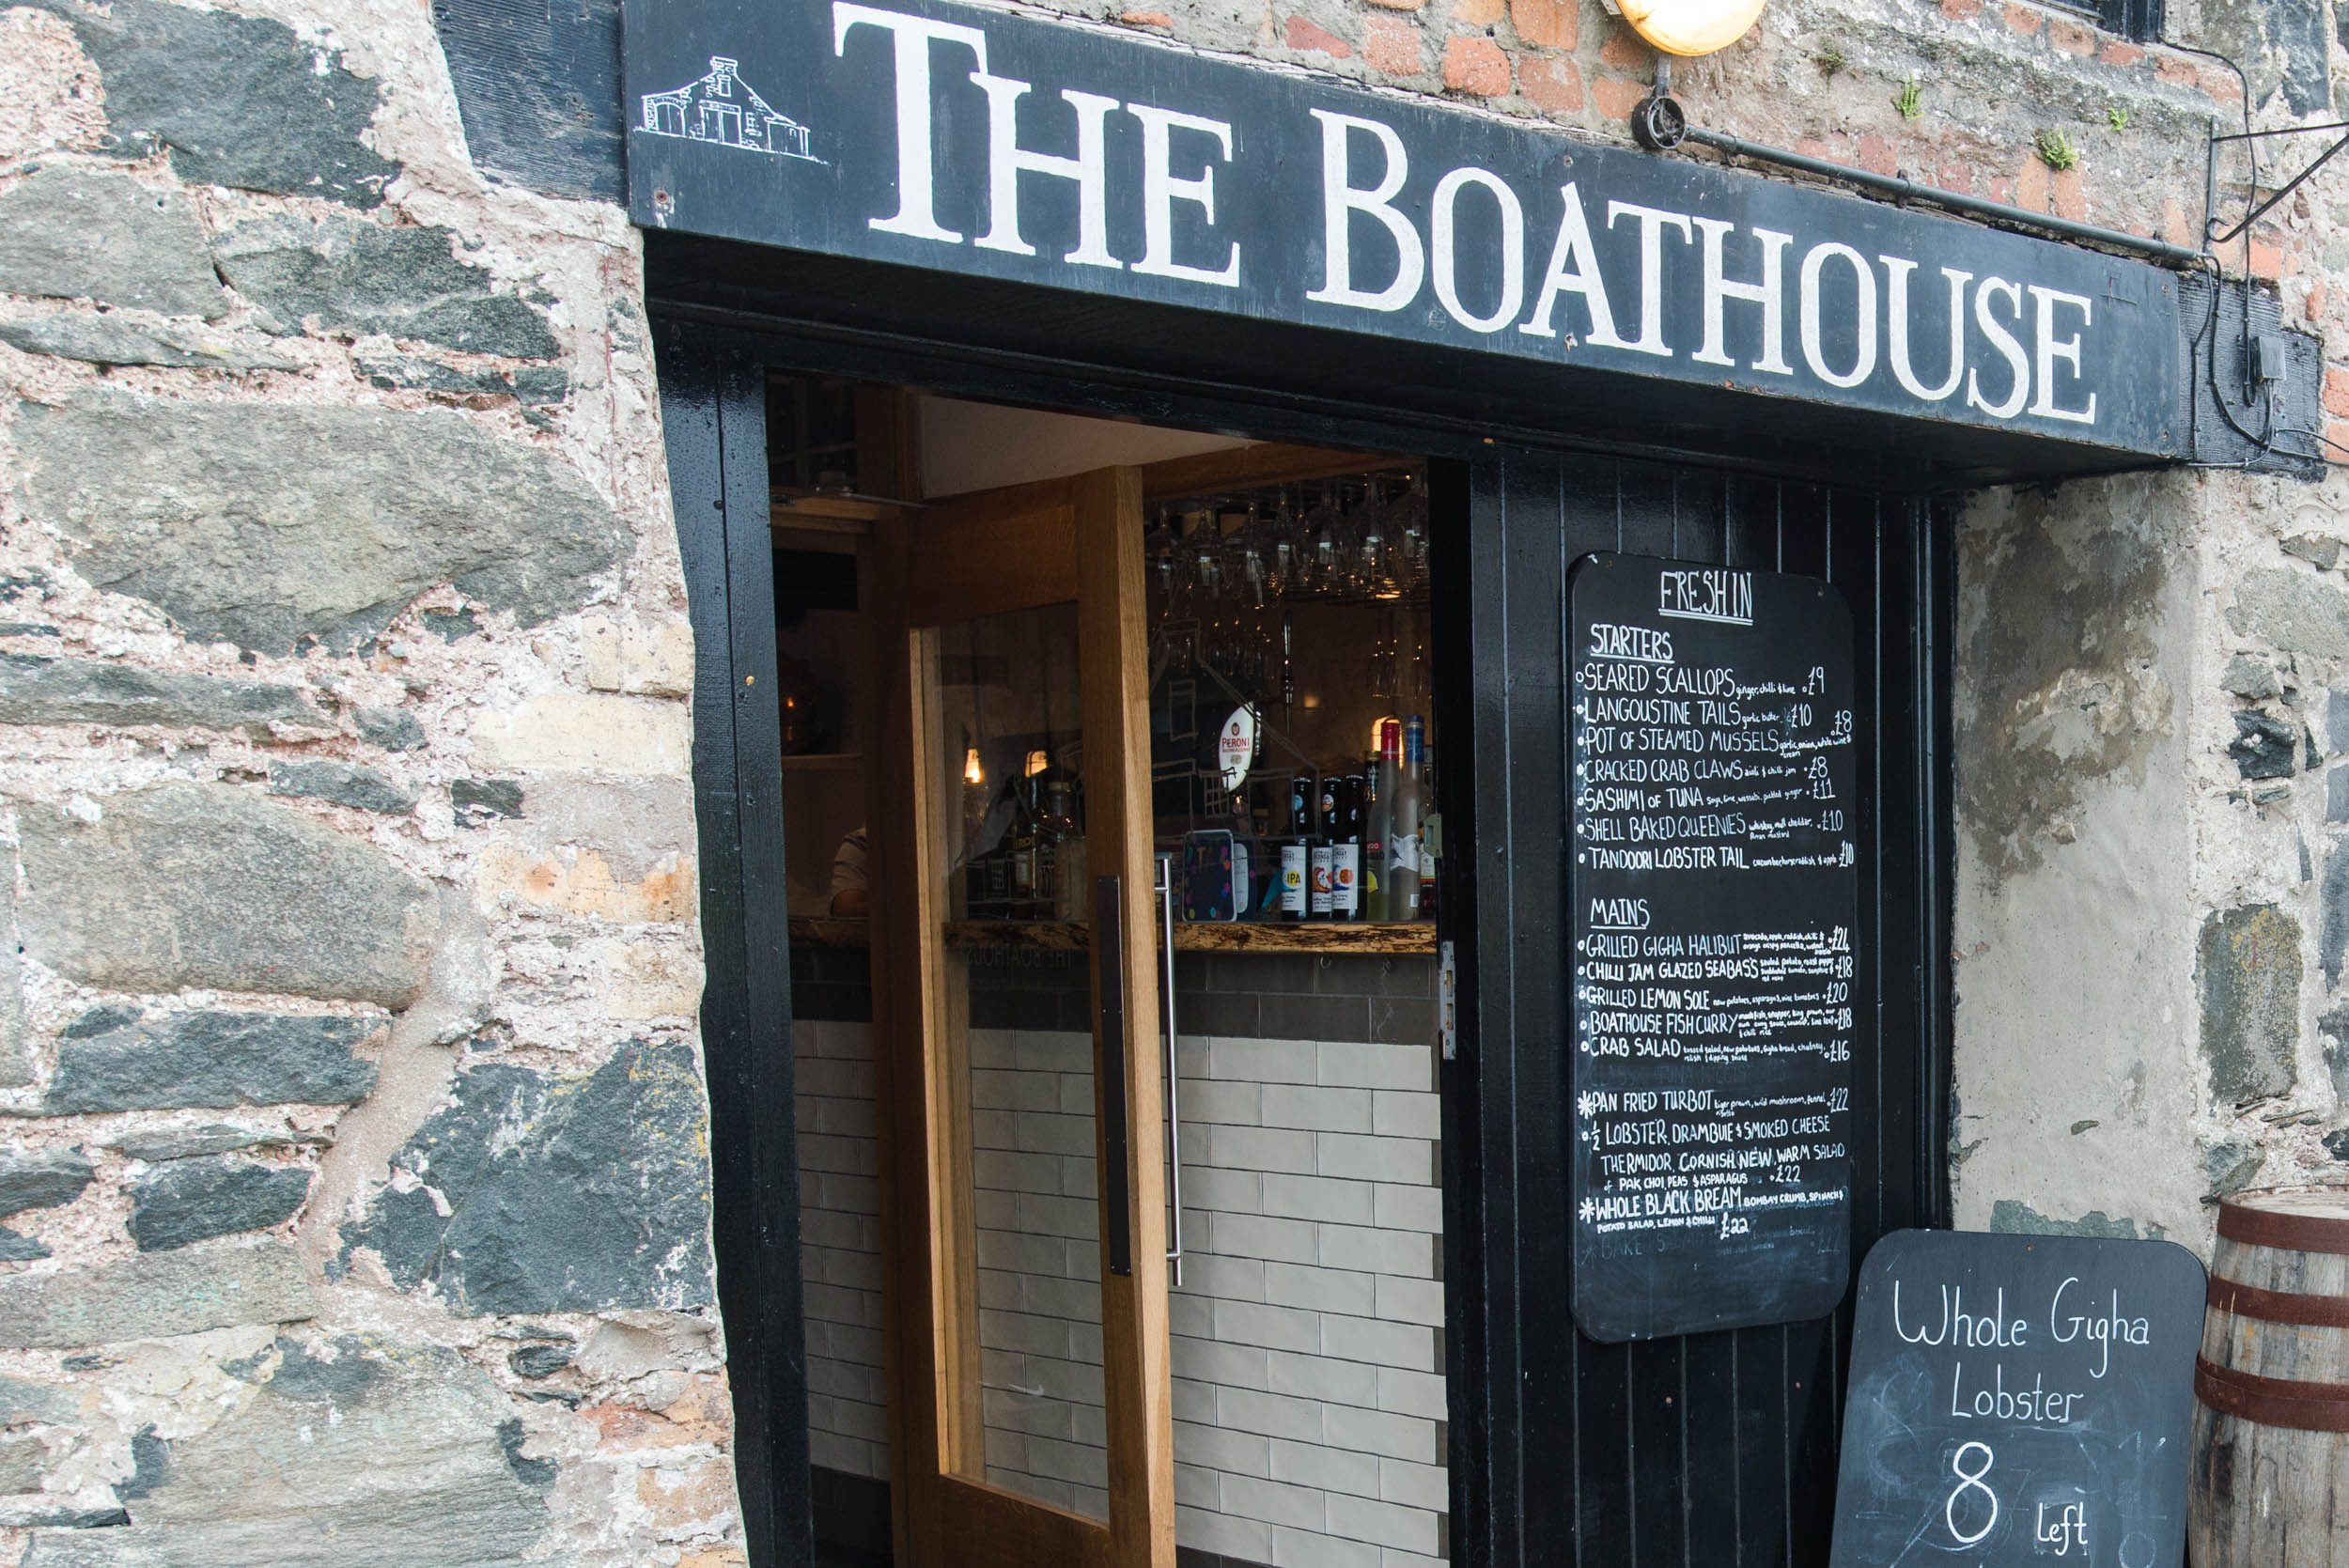 Gigha Boathouse Restaurant